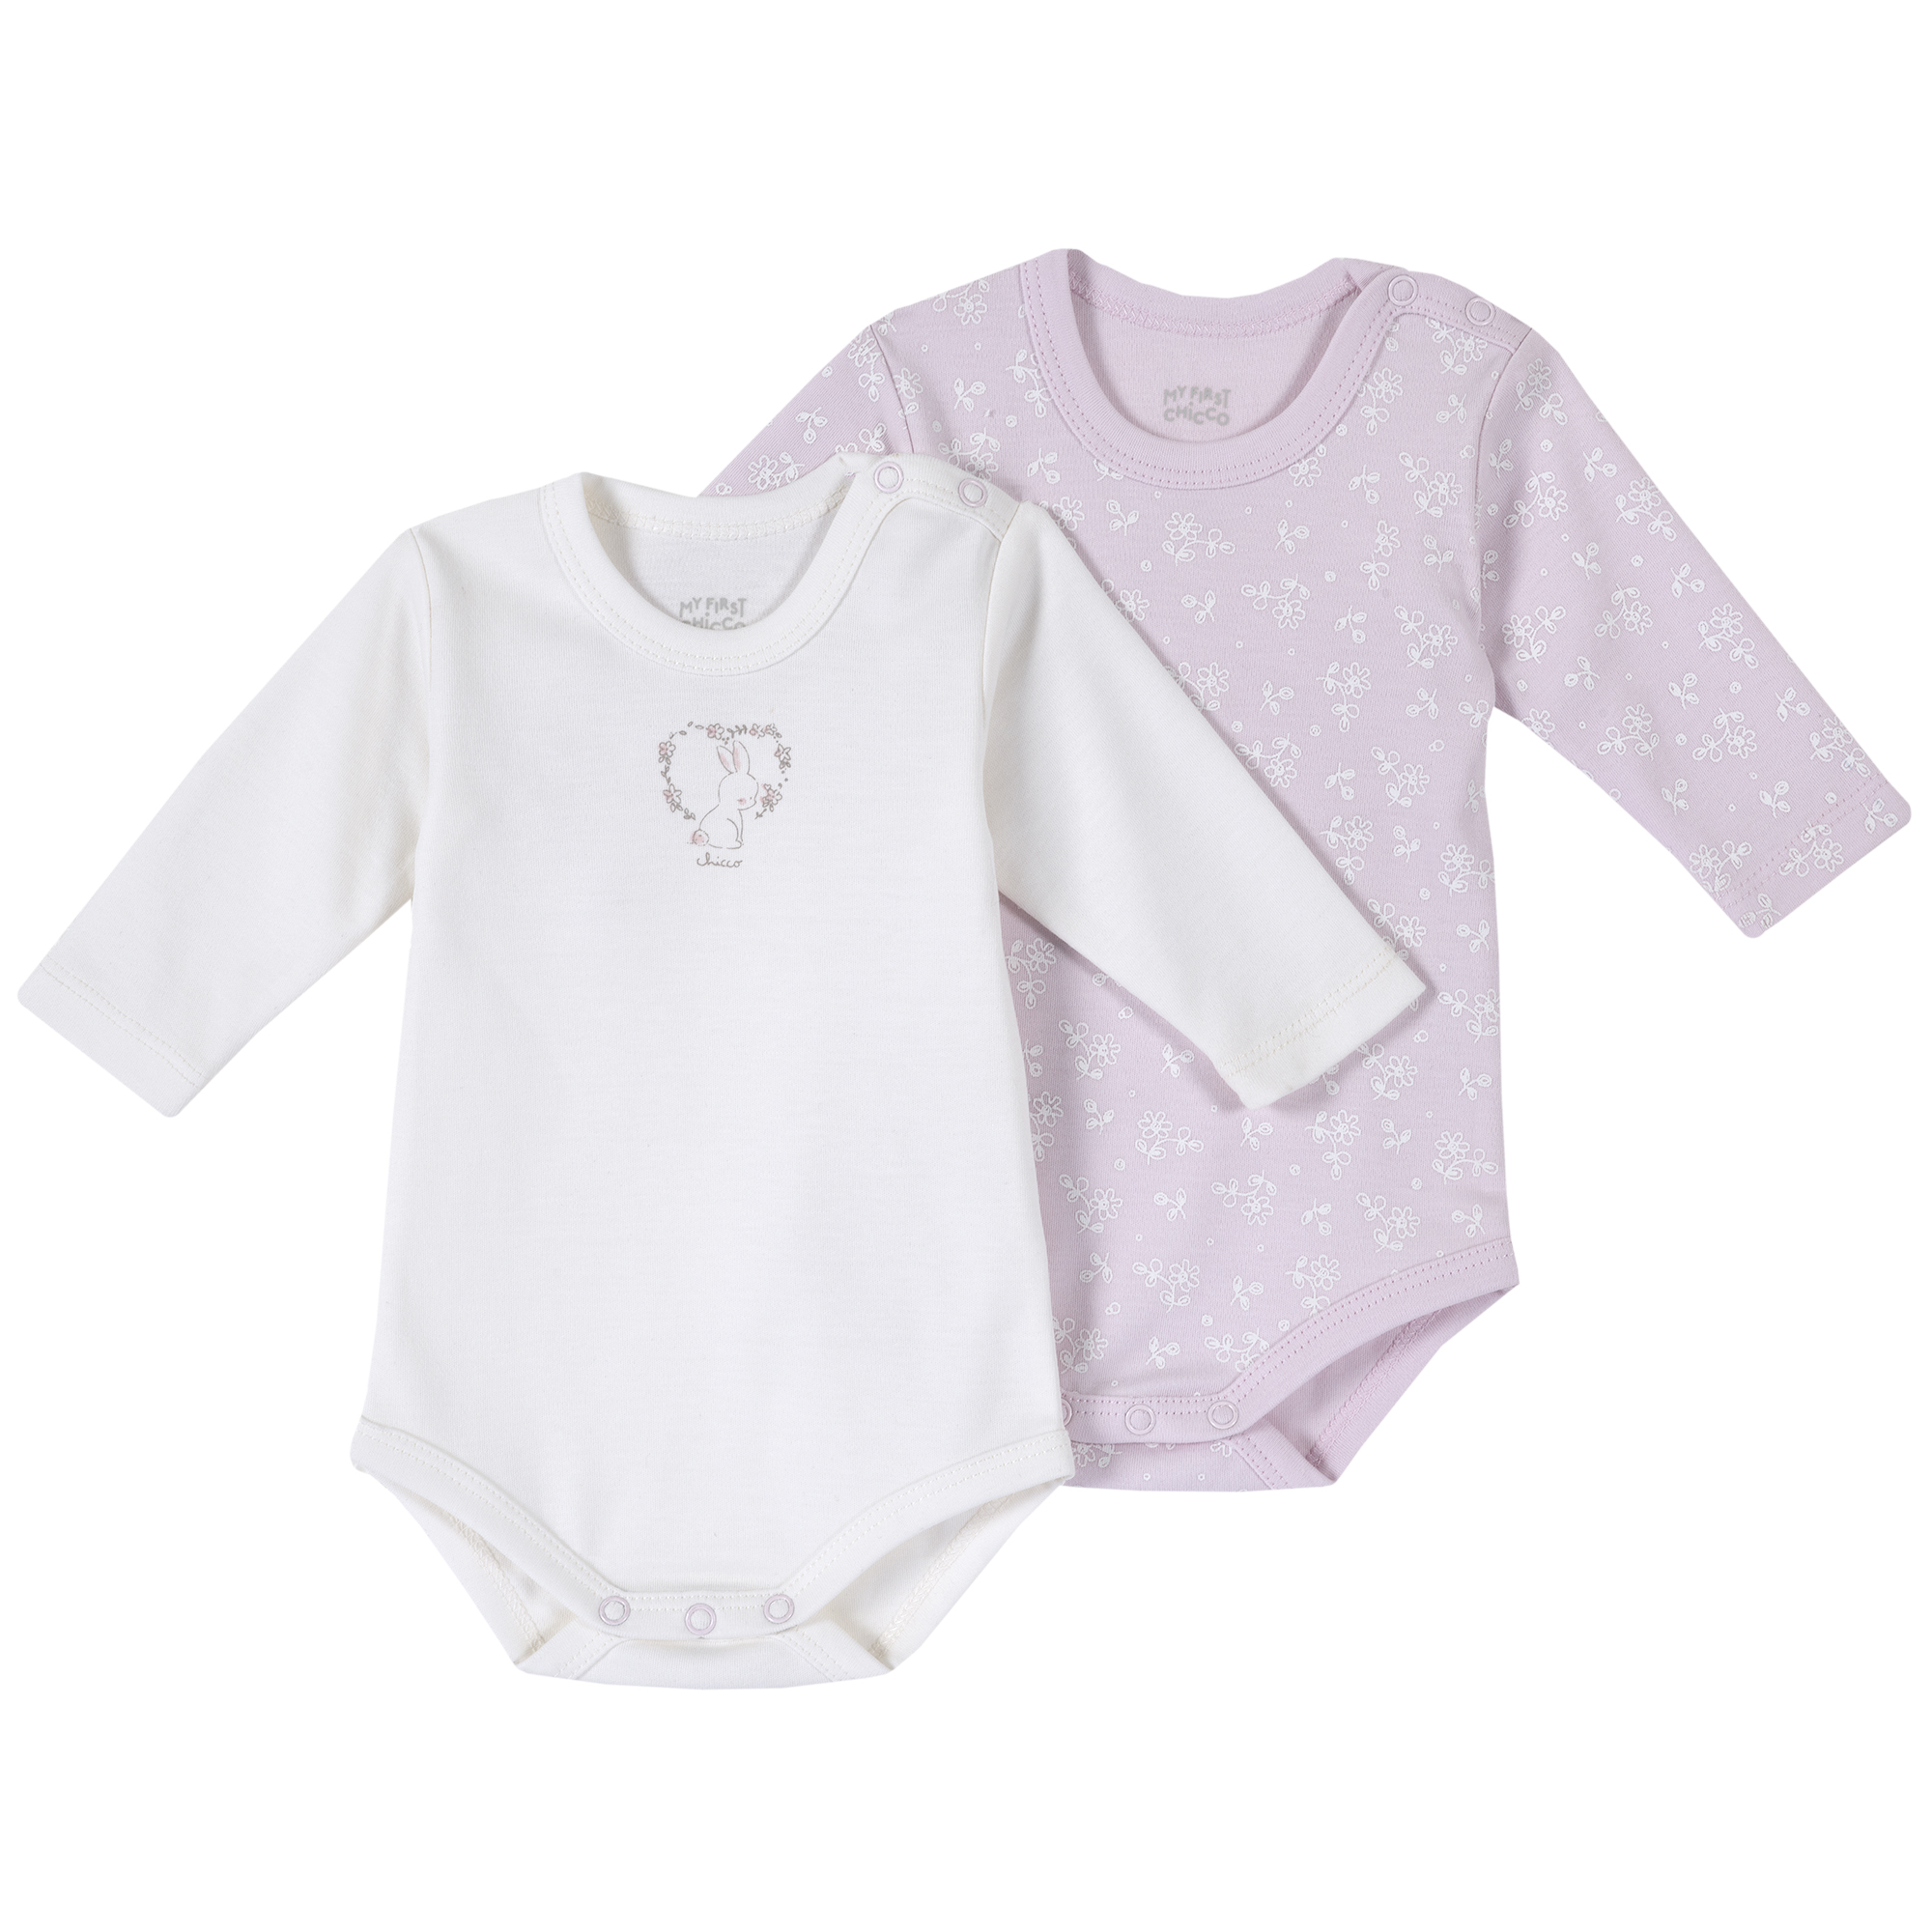 Set doua body bebe Chicco, maneca lunga, roz, 11398 din categoria Salopete/Body